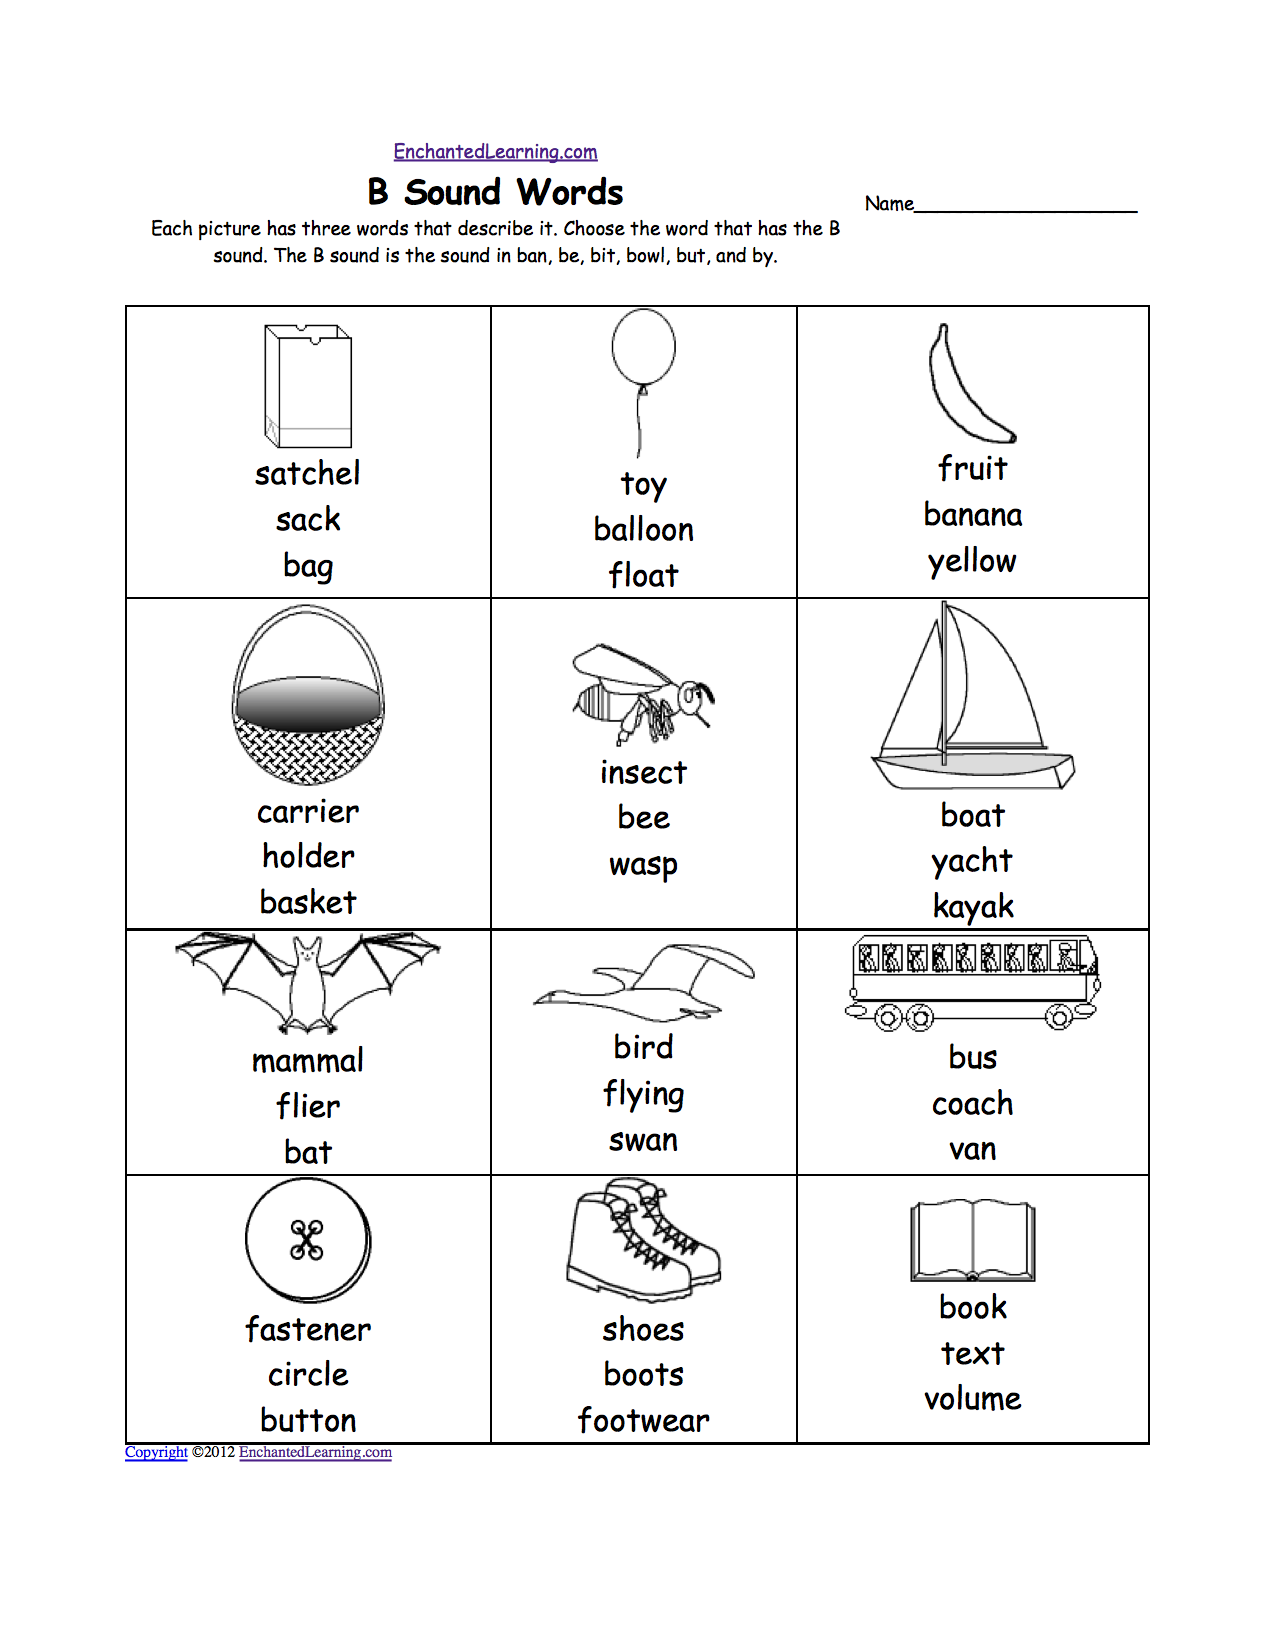 Aldiablosus  Marvelous Phonics Worksheets Multiple Choice Worksheets To Print  With Foxy Quotbquot Sound Phonics Worksheet Multiple Choice Each Picture Has Three Words That Describe It Choose The Word That Has A Quotbquot Sound The Quotbquot Sound Is The Sound  With Appealing Easy Reading Worksheets Also Mixed Multiplication Worksheet In Addition Measurement Worksheets Nd Grade And Winter Color By Number Worksheets As Well As Th Grade Adjective Worksheets Additionally Number  Worksheets From Enchantedlearningcom With Aldiablosus  Foxy Phonics Worksheets Multiple Choice Worksheets To Print  With Appealing Quotbquot Sound Phonics Worksheet Multiple Choice Each Picture Has Three Words That Describe It Choose The Word That Has A Quotbquot Sound The Quotbquot Sound Is The Sound  And Marvelous Easy Reading Worksheets Also Mixed Multiplication Worksheet In Addition Measurement Worksheets Nd Grade From Enchantedlearningcom